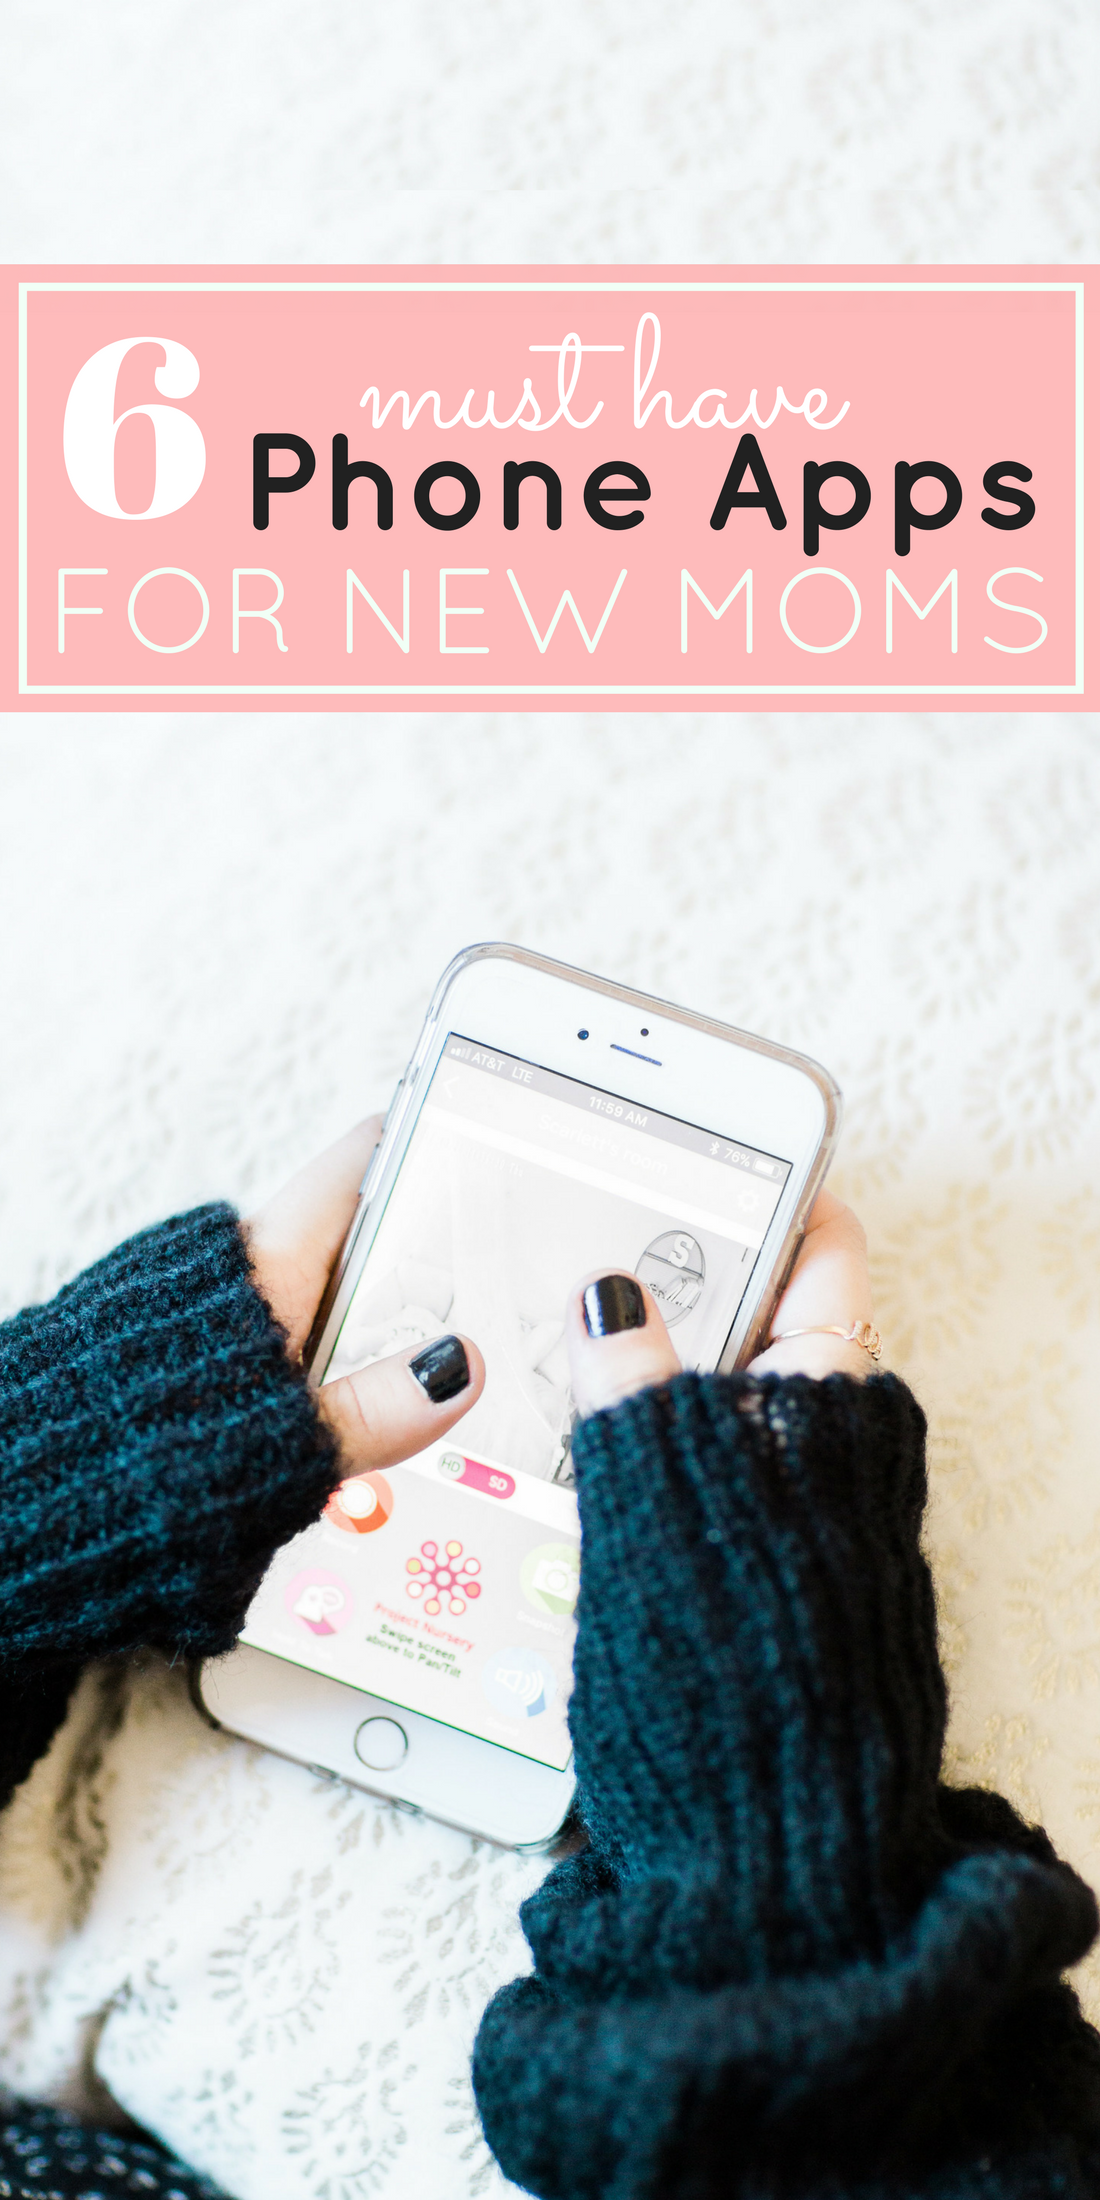 Mom blogger Lexi of Glitter, Inc. shares her favorite phone apps for new moms. These mom-friendly apps are the ones she uses most often to keep up with and keep track of baby, family, and our busy lives! | glitterinc.com | @glitterinc - The Best Phone Apps for New Moms by popular North Carolina mom blogger Glitter, Inc.